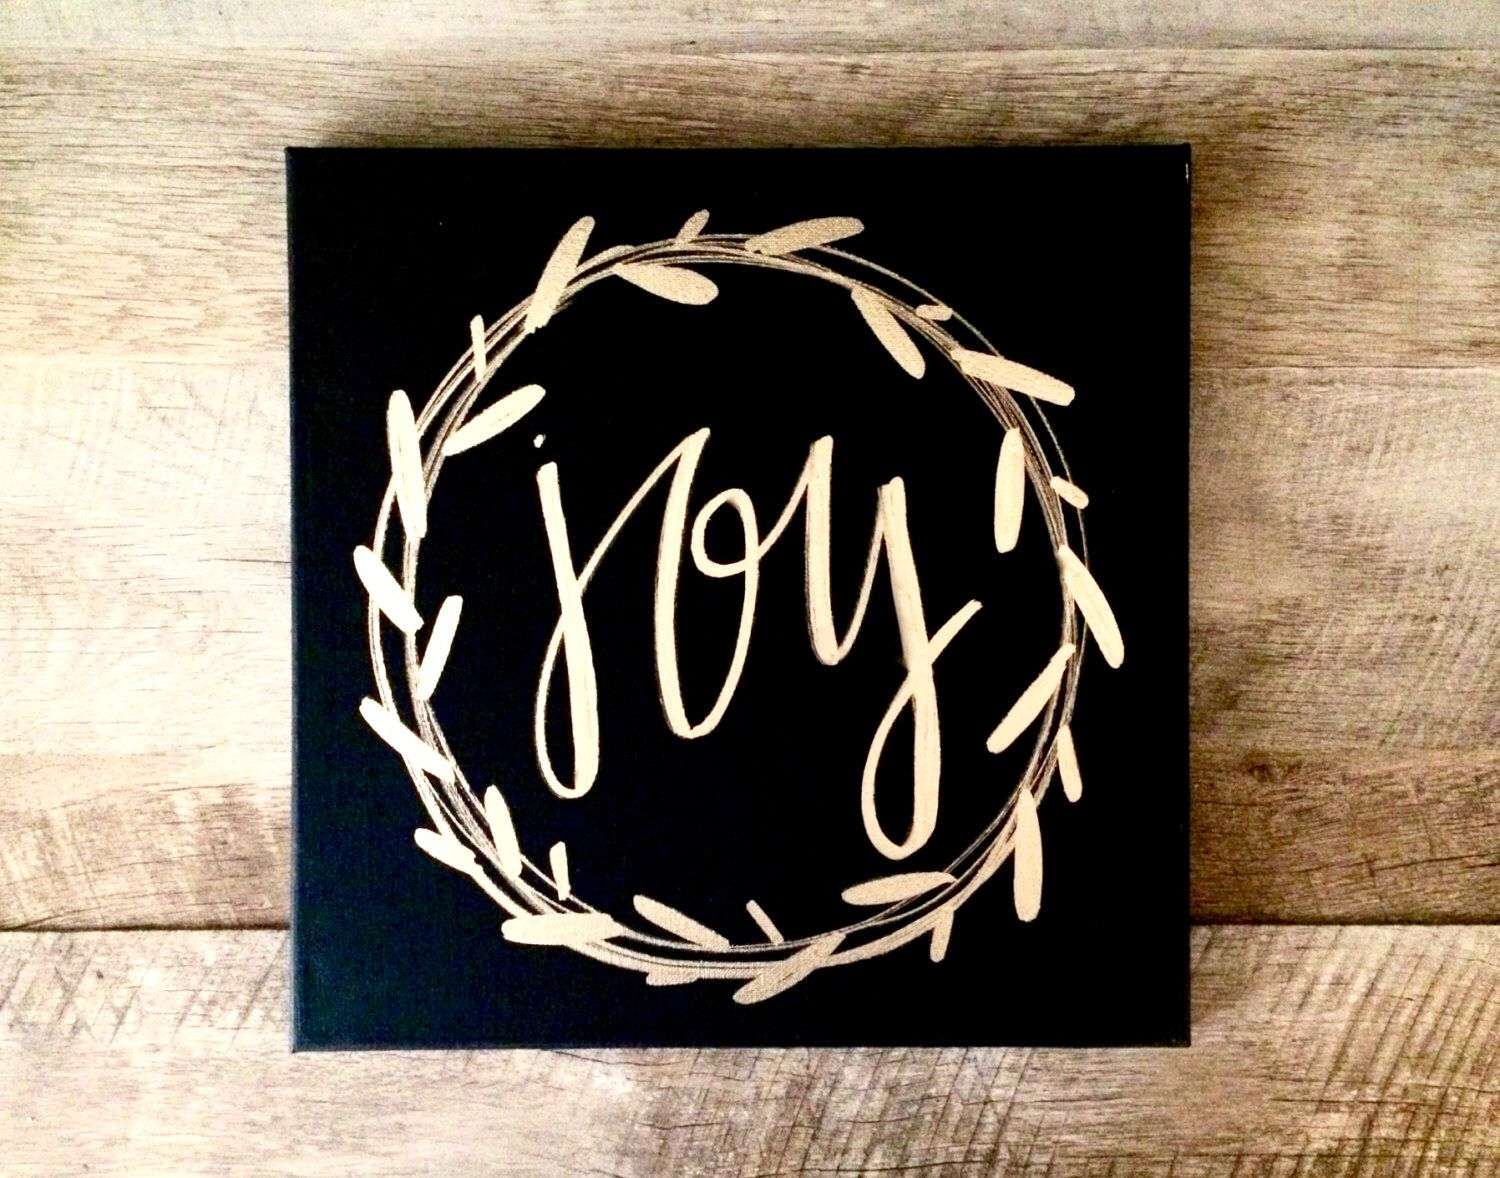 Merry Christmas Quote Wall Art Decal: Joy Wreath Canvas Sign- 12x12 Home Decor, Christmas Sign